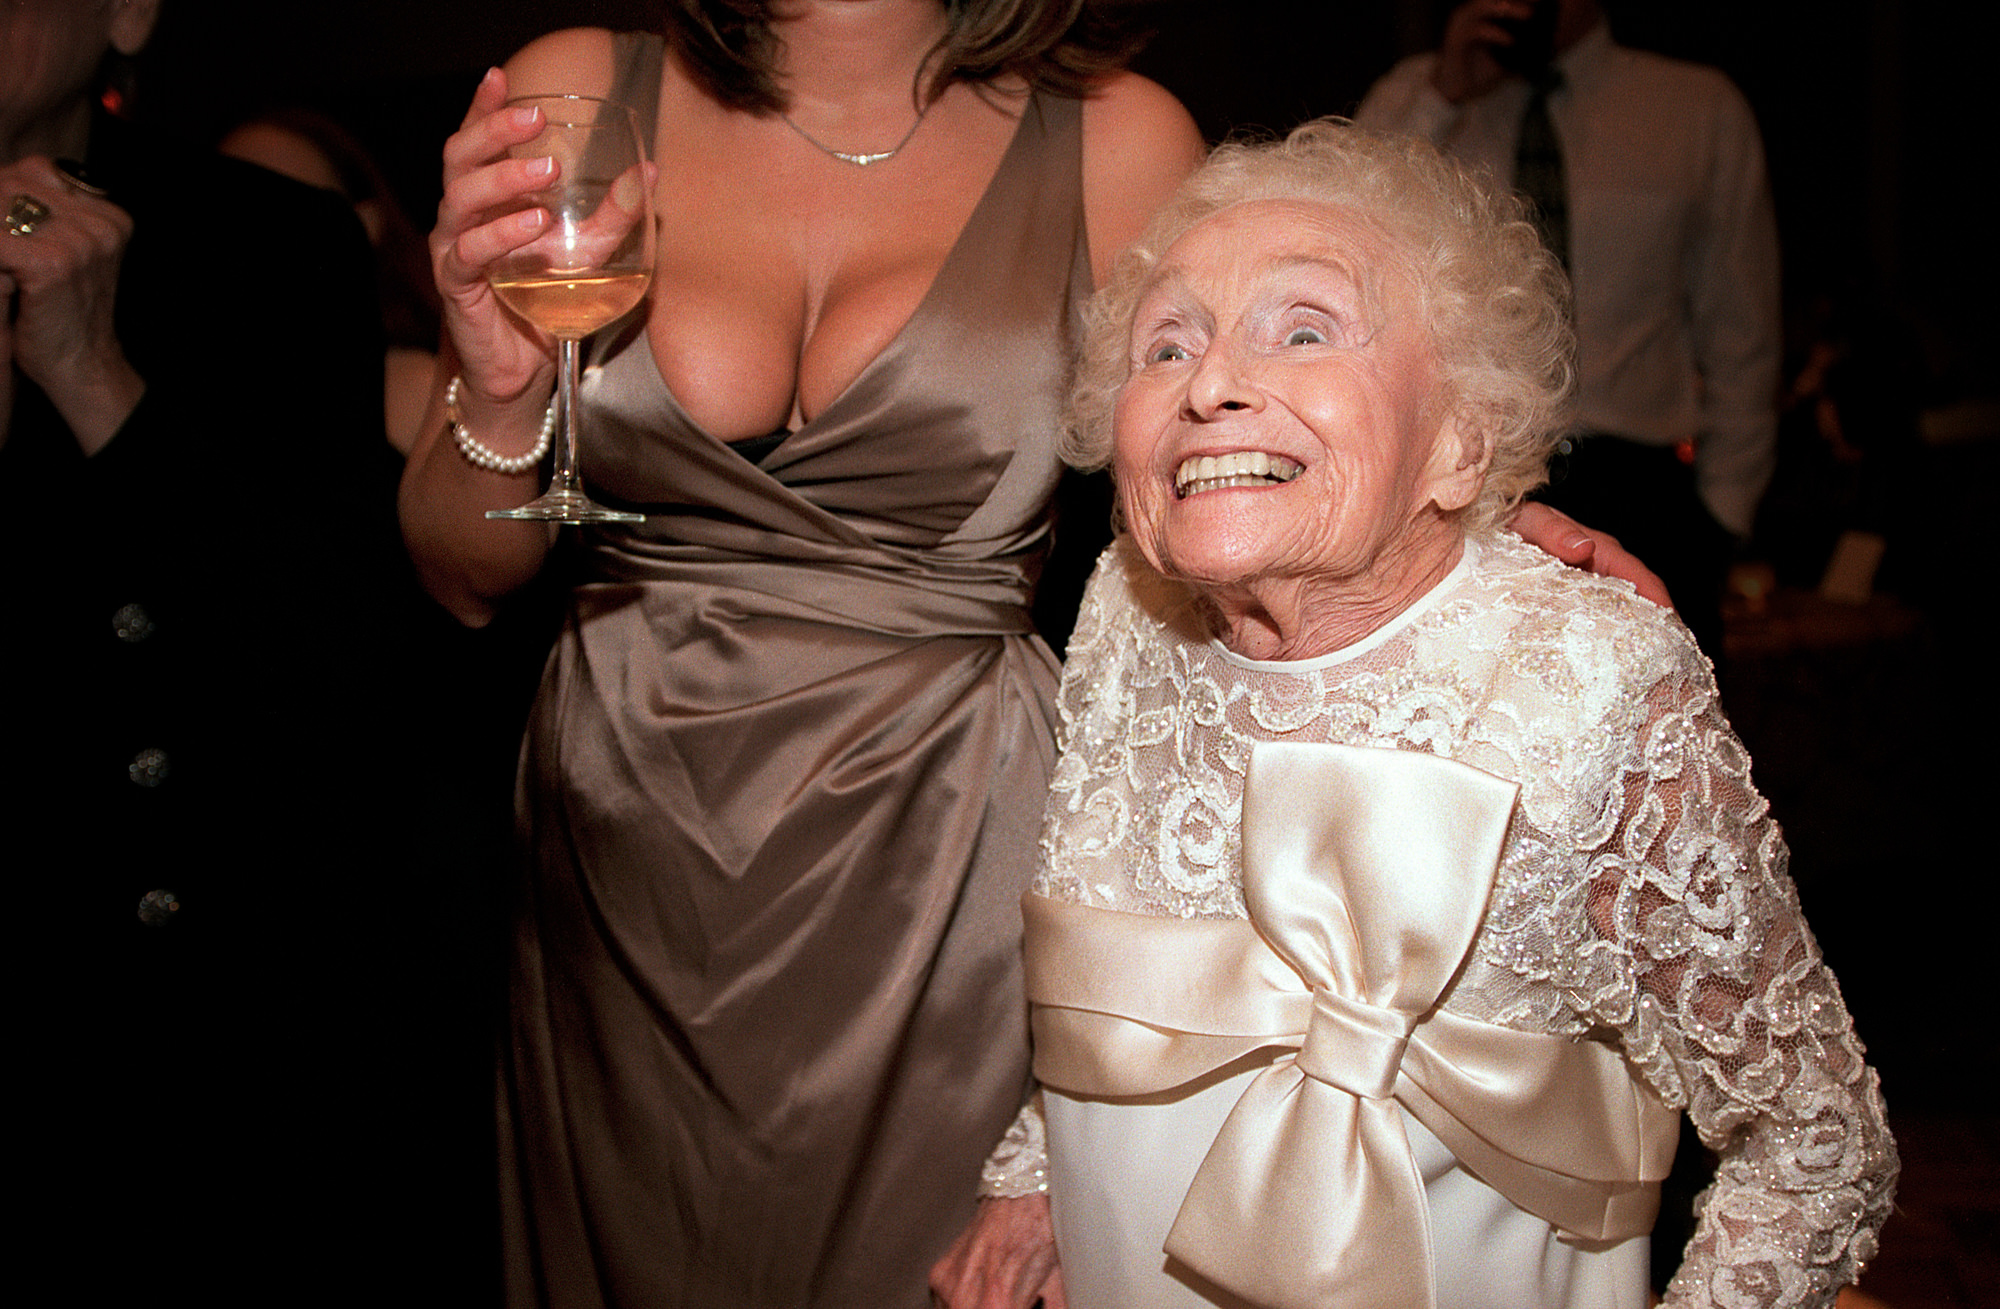 Smiling grandma on dance floor eye level with bridesmaids breasts - photo by Jerry Ghionis